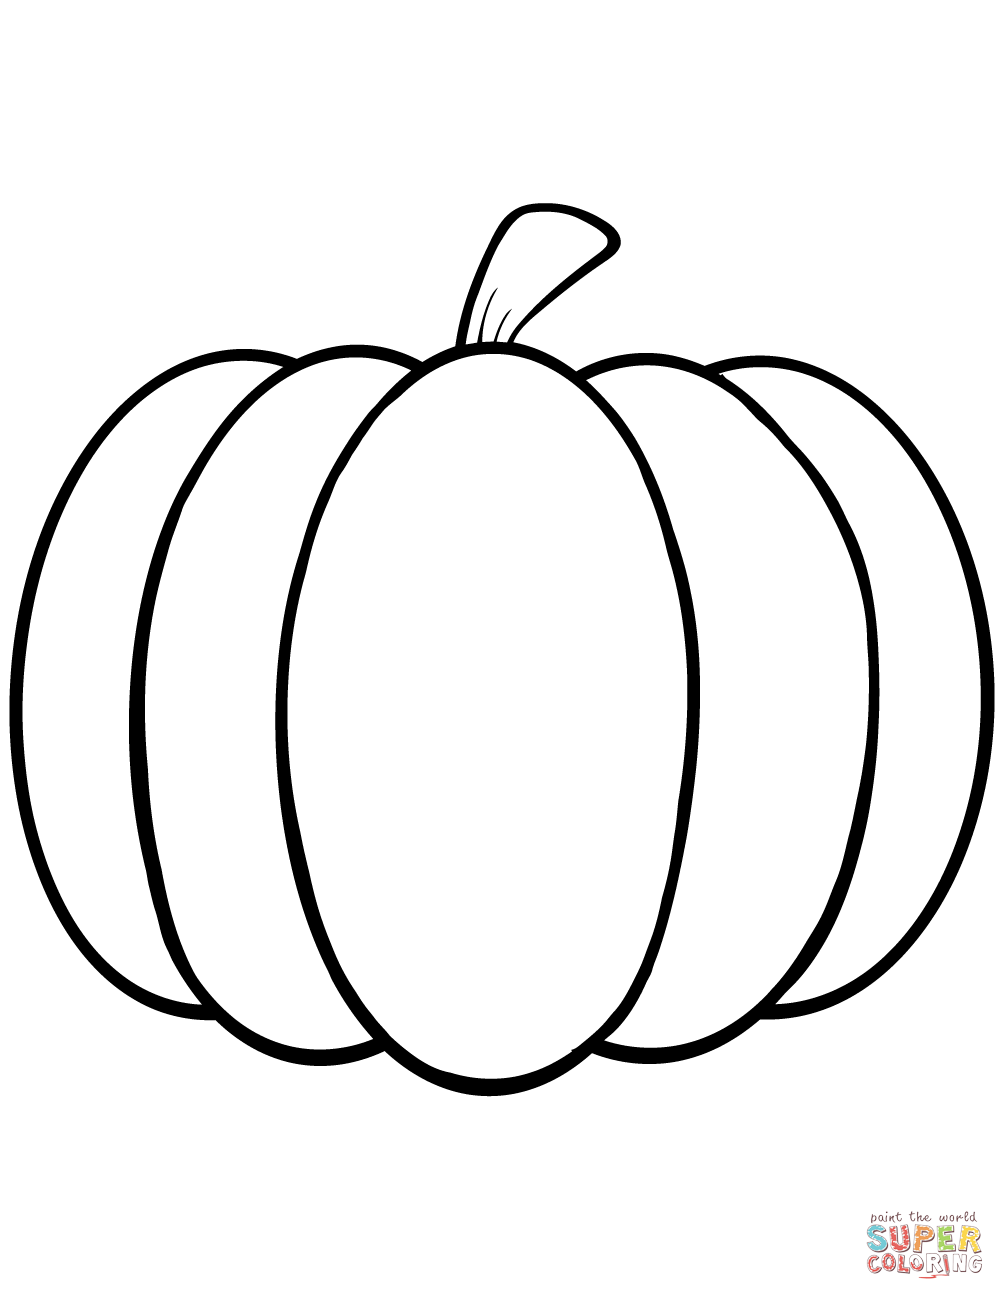 Pumpkin coloring, Download Pumpkin coloring for free 2019